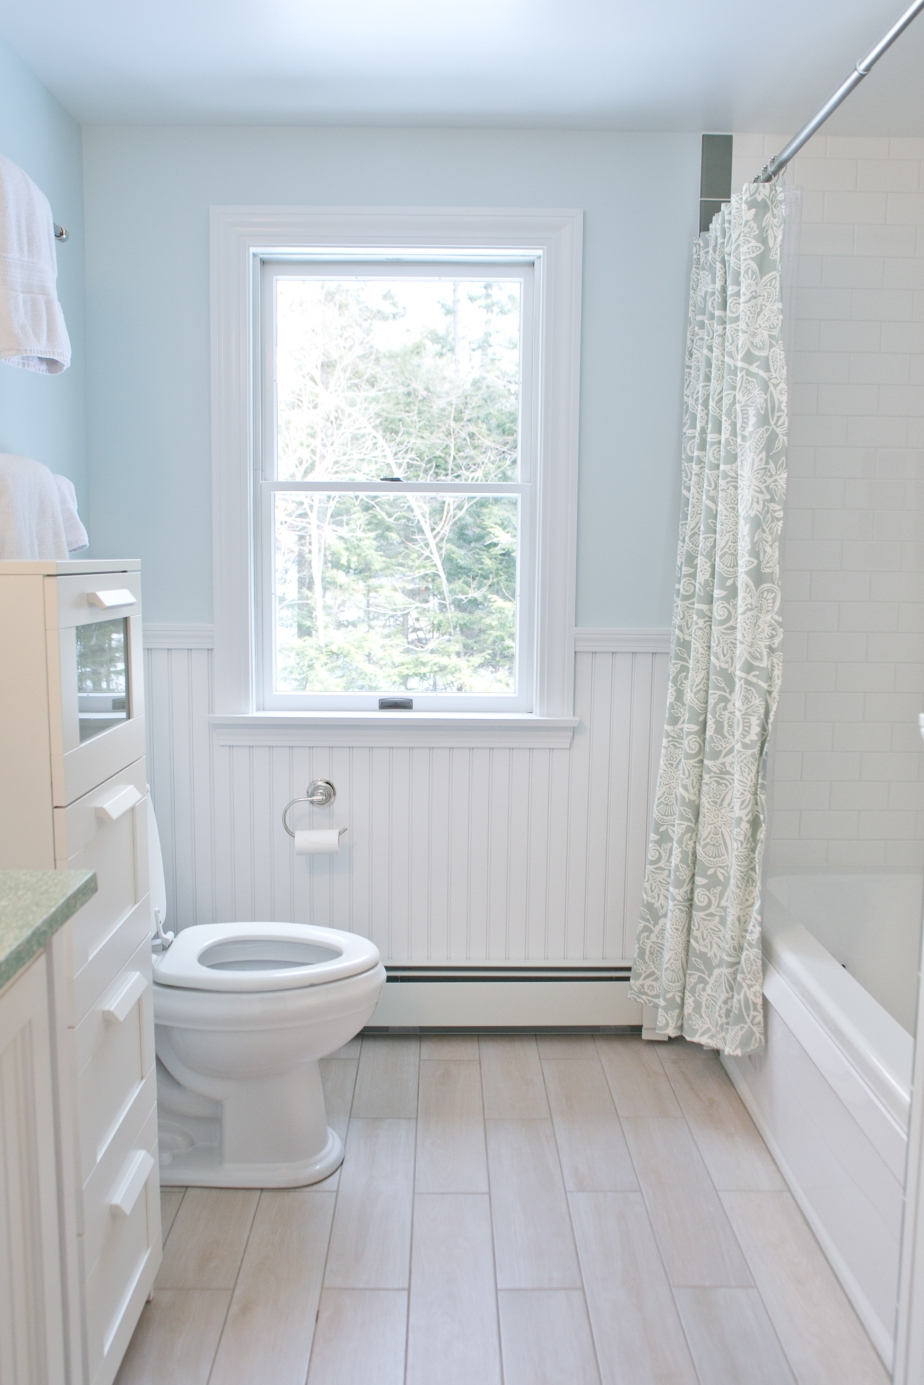 Budgeting for a smallbathroom